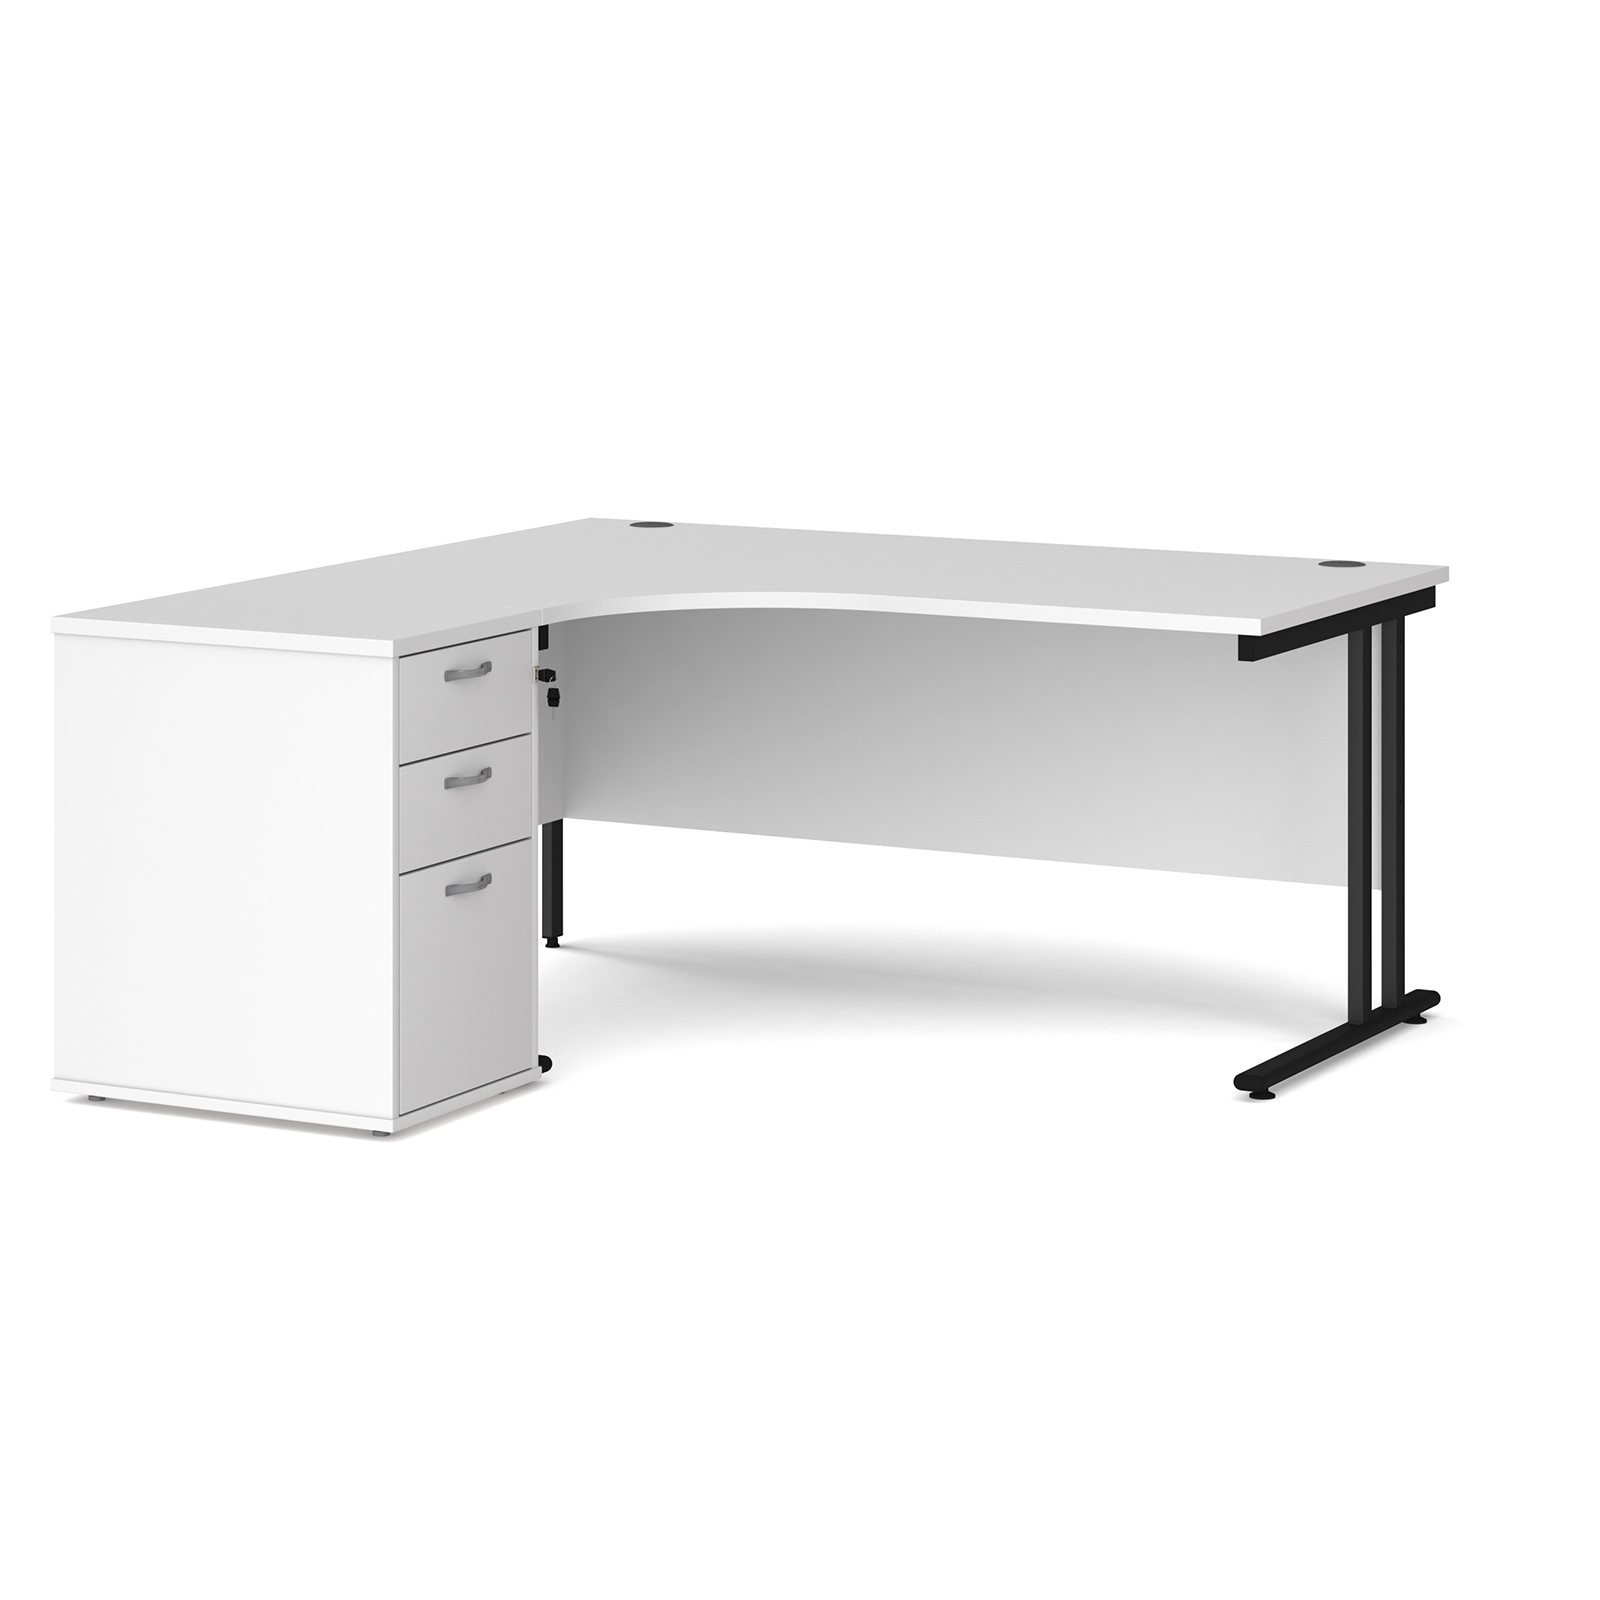 Left Handed Maestro 25 left hand ergonomic desk 1600mm with black cantilever frame and desk high pedestal - white